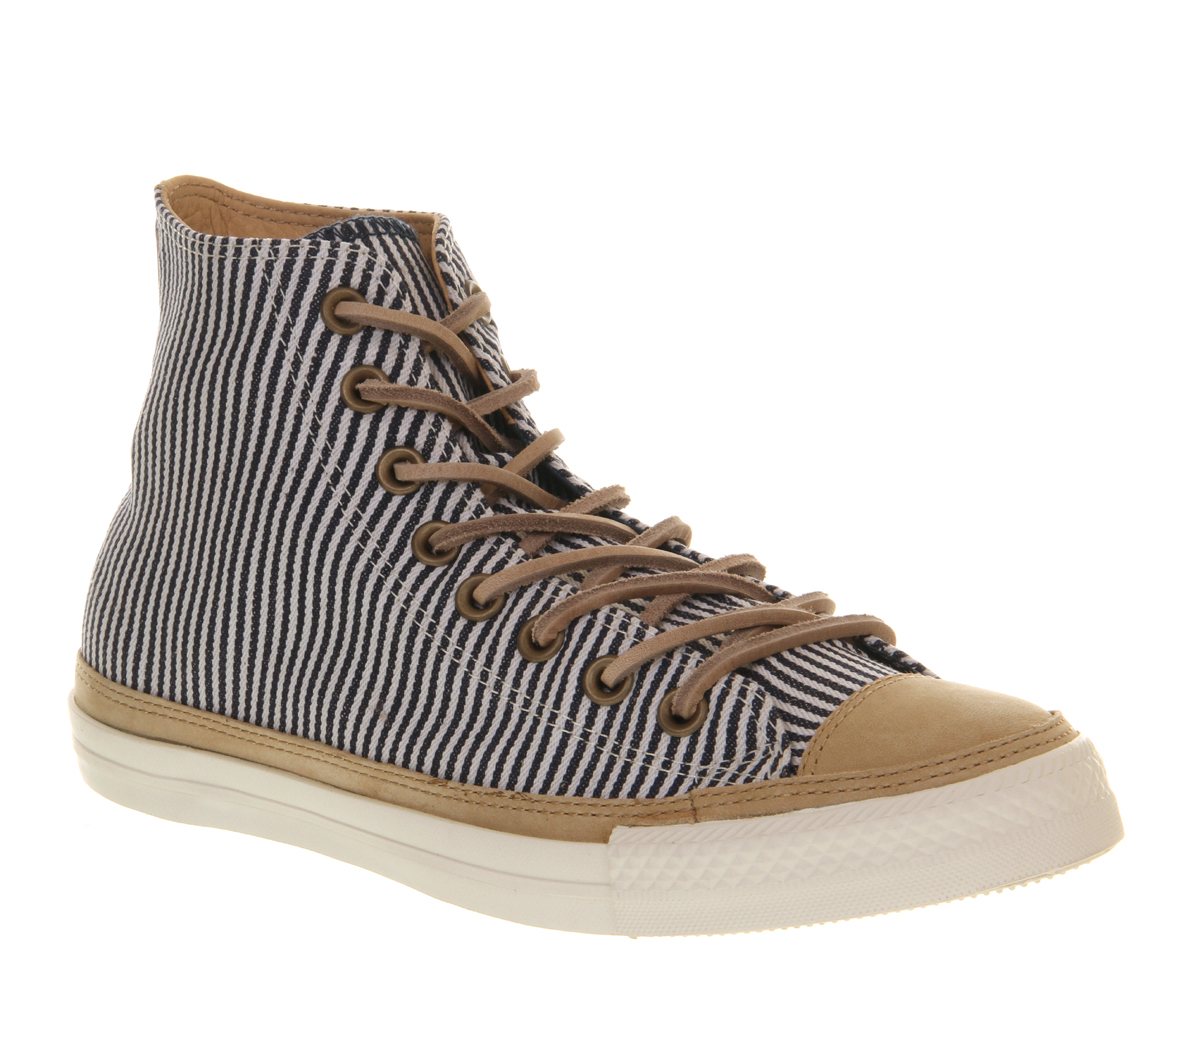 Converse-Ctas-Hi-Premium-HICKORY-STRIPE-NATURAL-LEATHER-SMU-EXCLUSIVE-Trainers-S